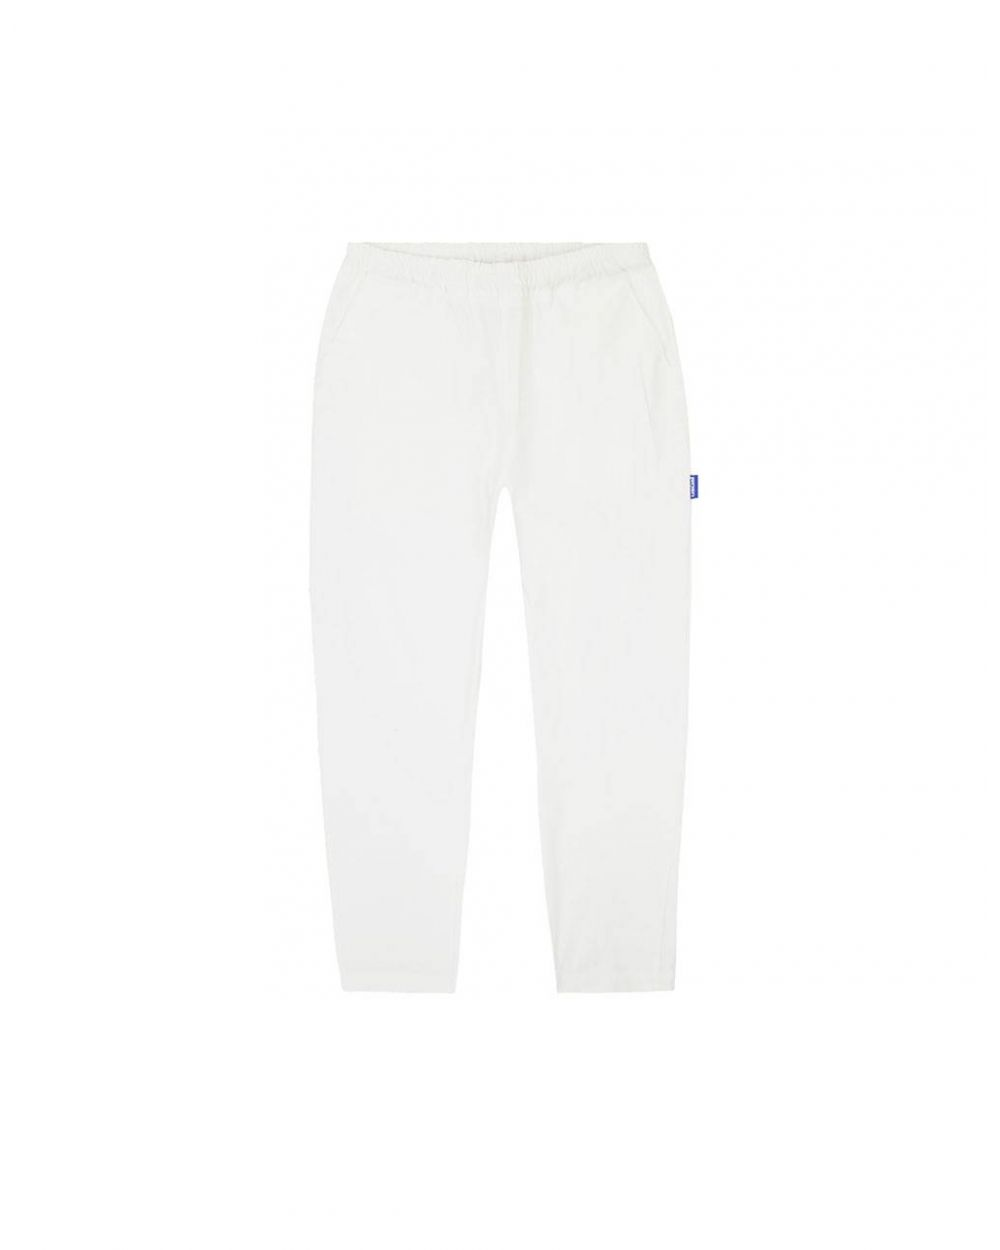 Usual Team Pants - white Usual Pant 94,26€